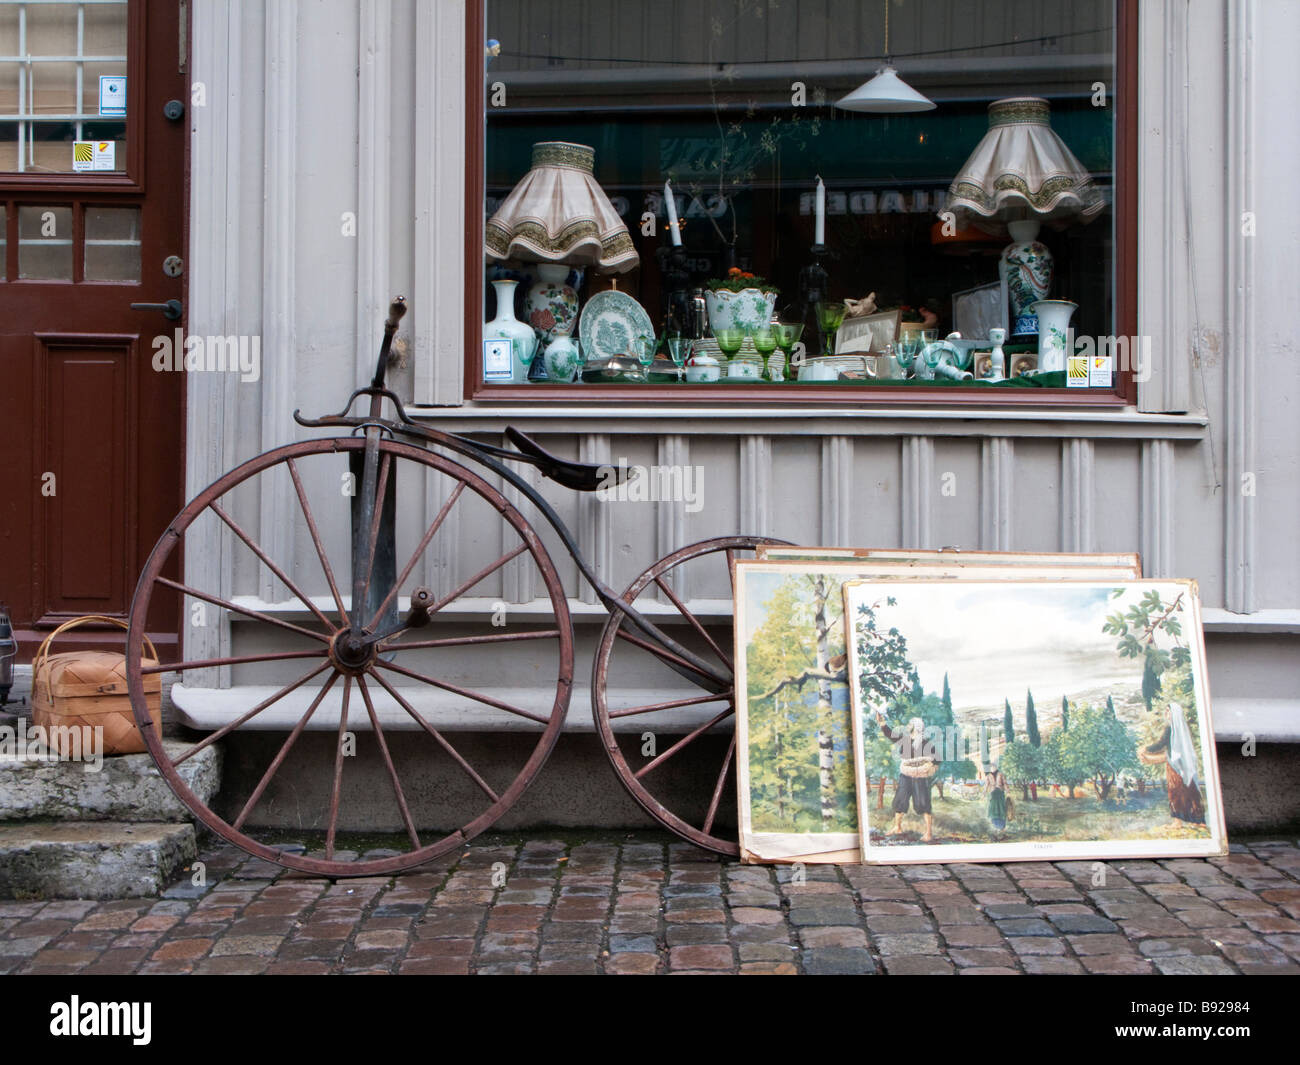 Antique shop on Haga Nygata street in old district of Haga in Gothenburg Sweden - Stock Image